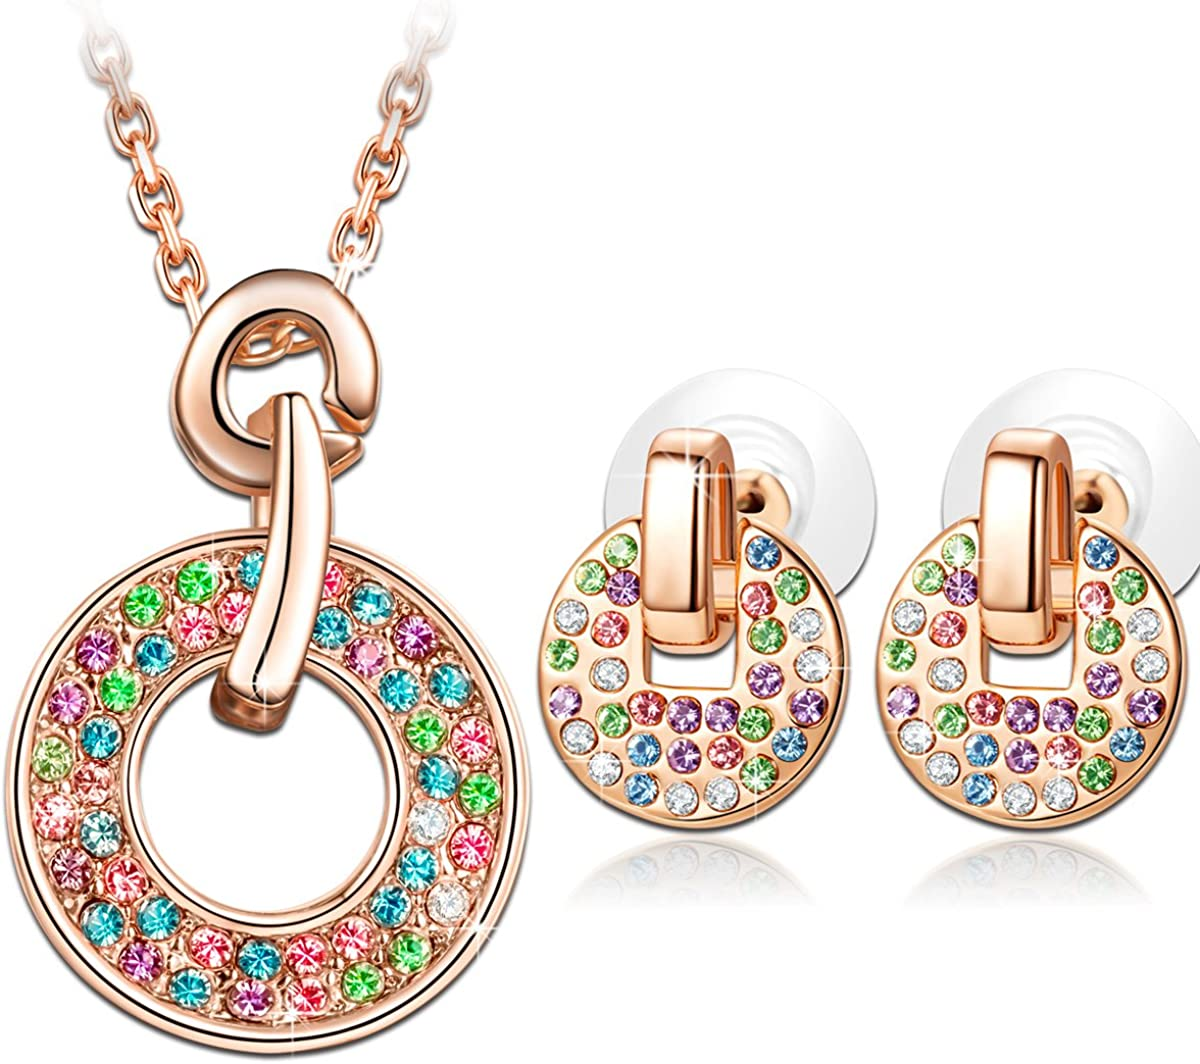 LADY COLOUR Jewelry Gifts for Mom, Multicolored Rose Gold Plated Necklace Stud Earrings Jewelry Set, Crystal Jewelry Gift BoxPacking, Anniversary Birthday Gifts for Her